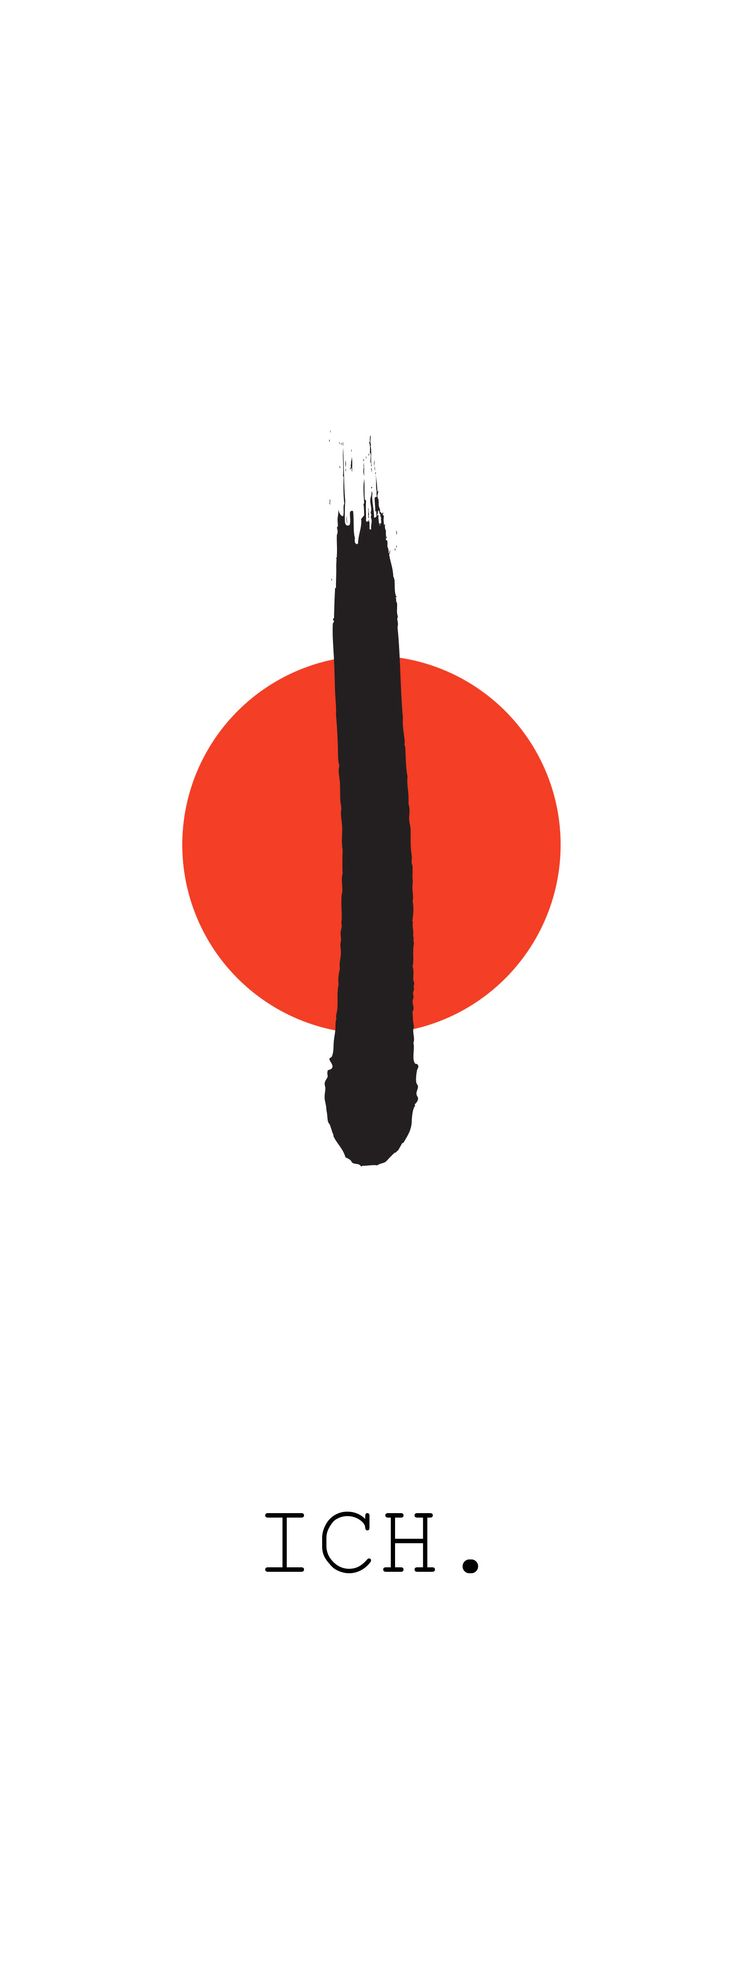 playing around with japanese style design ideas today. #skmatic